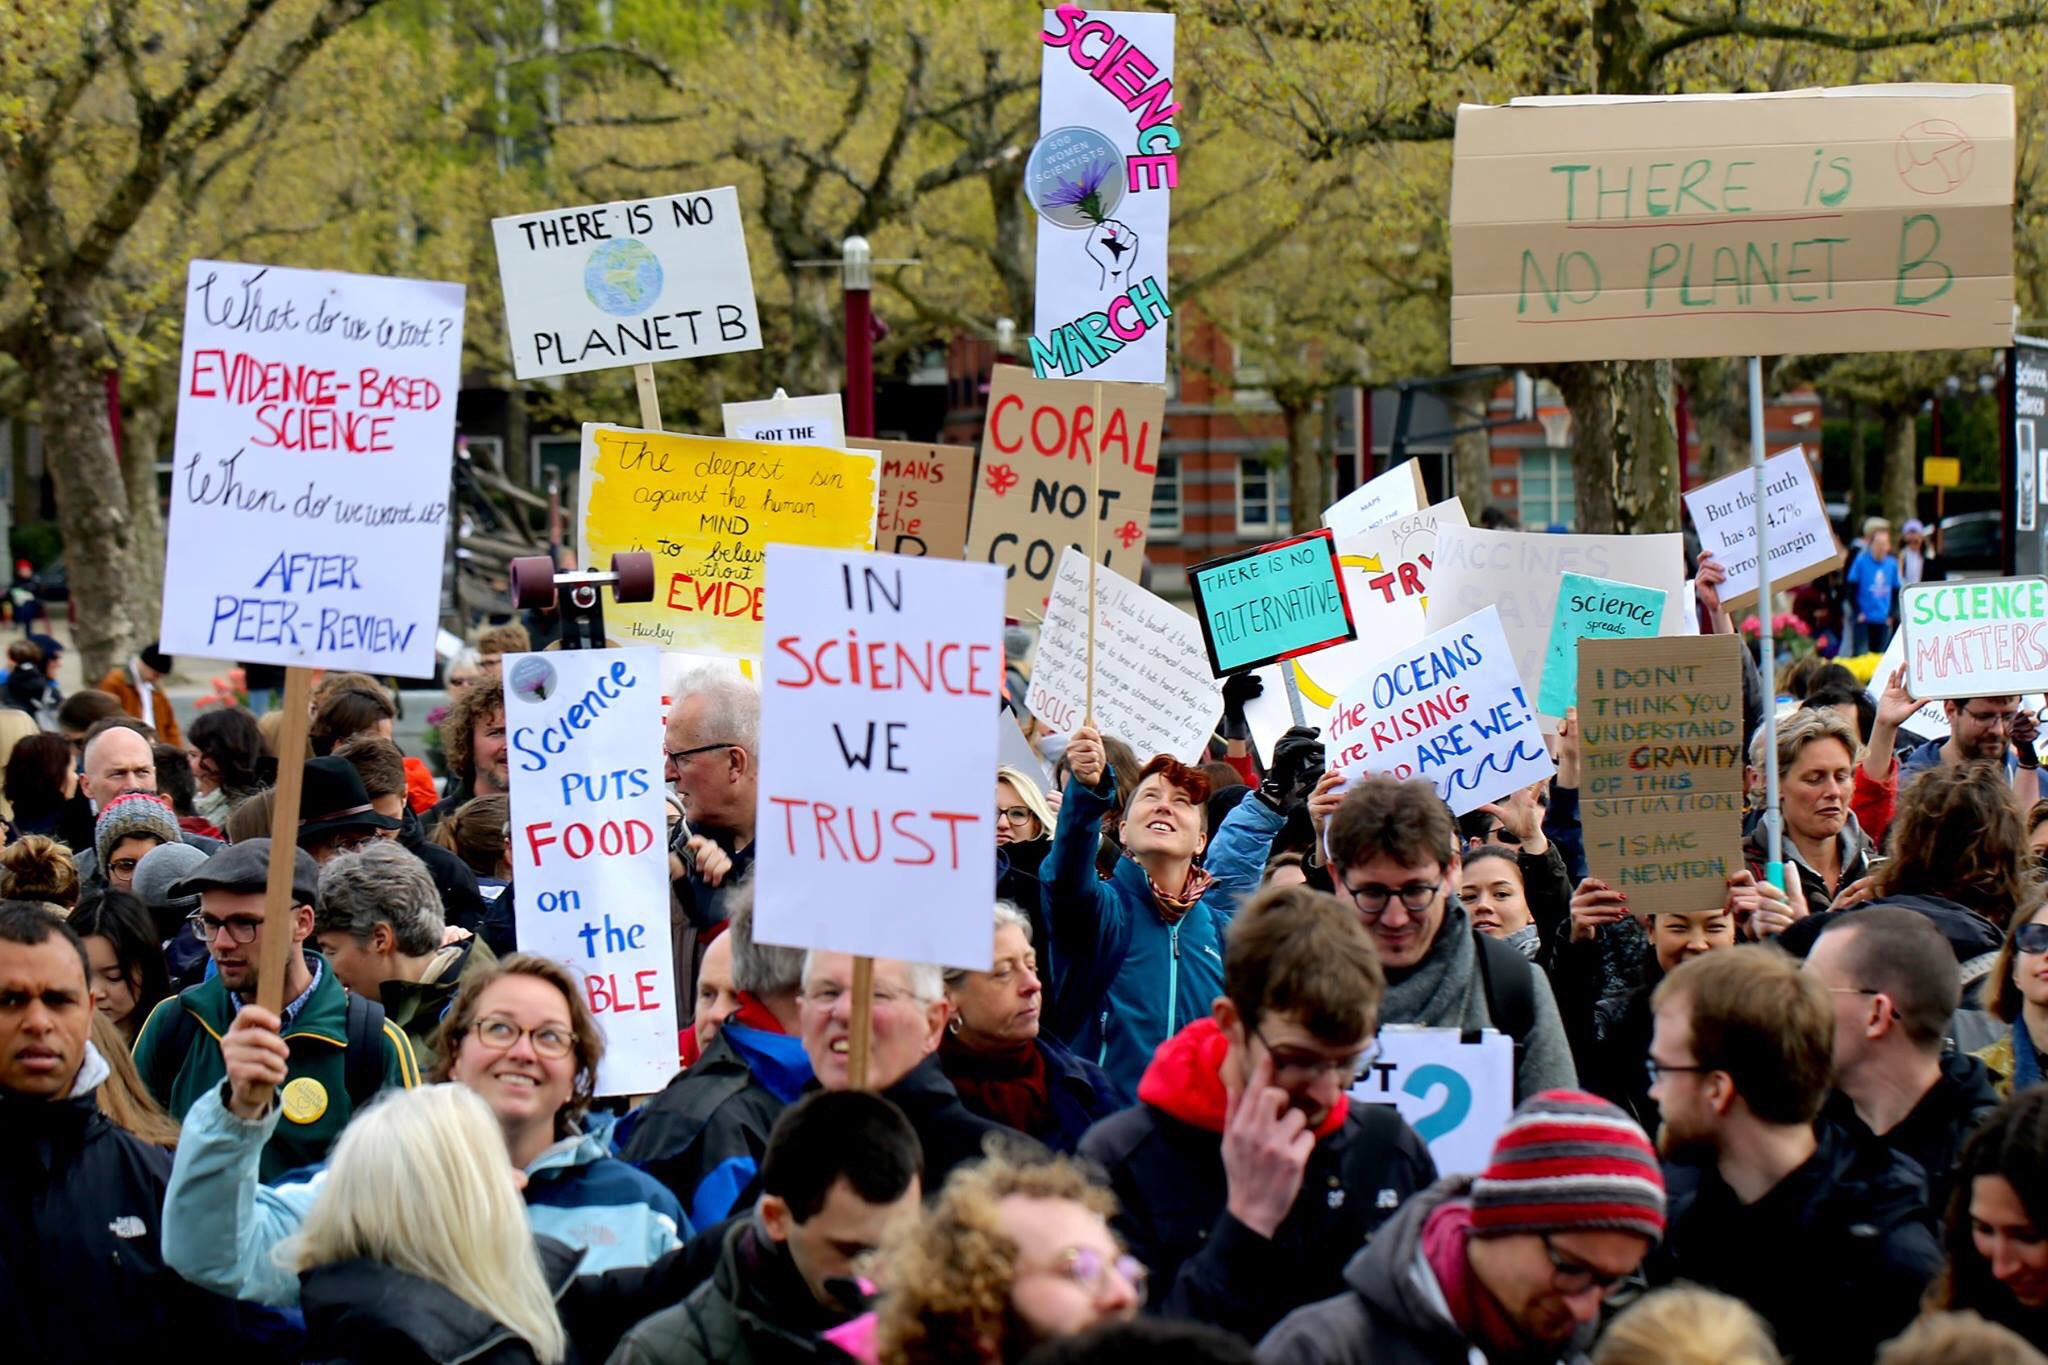 Awesome photo of last Saturday's March For Science at Museumplein, Amsterdam. Credits go to Tammy Sheldon Photography @rogueinams https://t.co/8Hp6talNwW